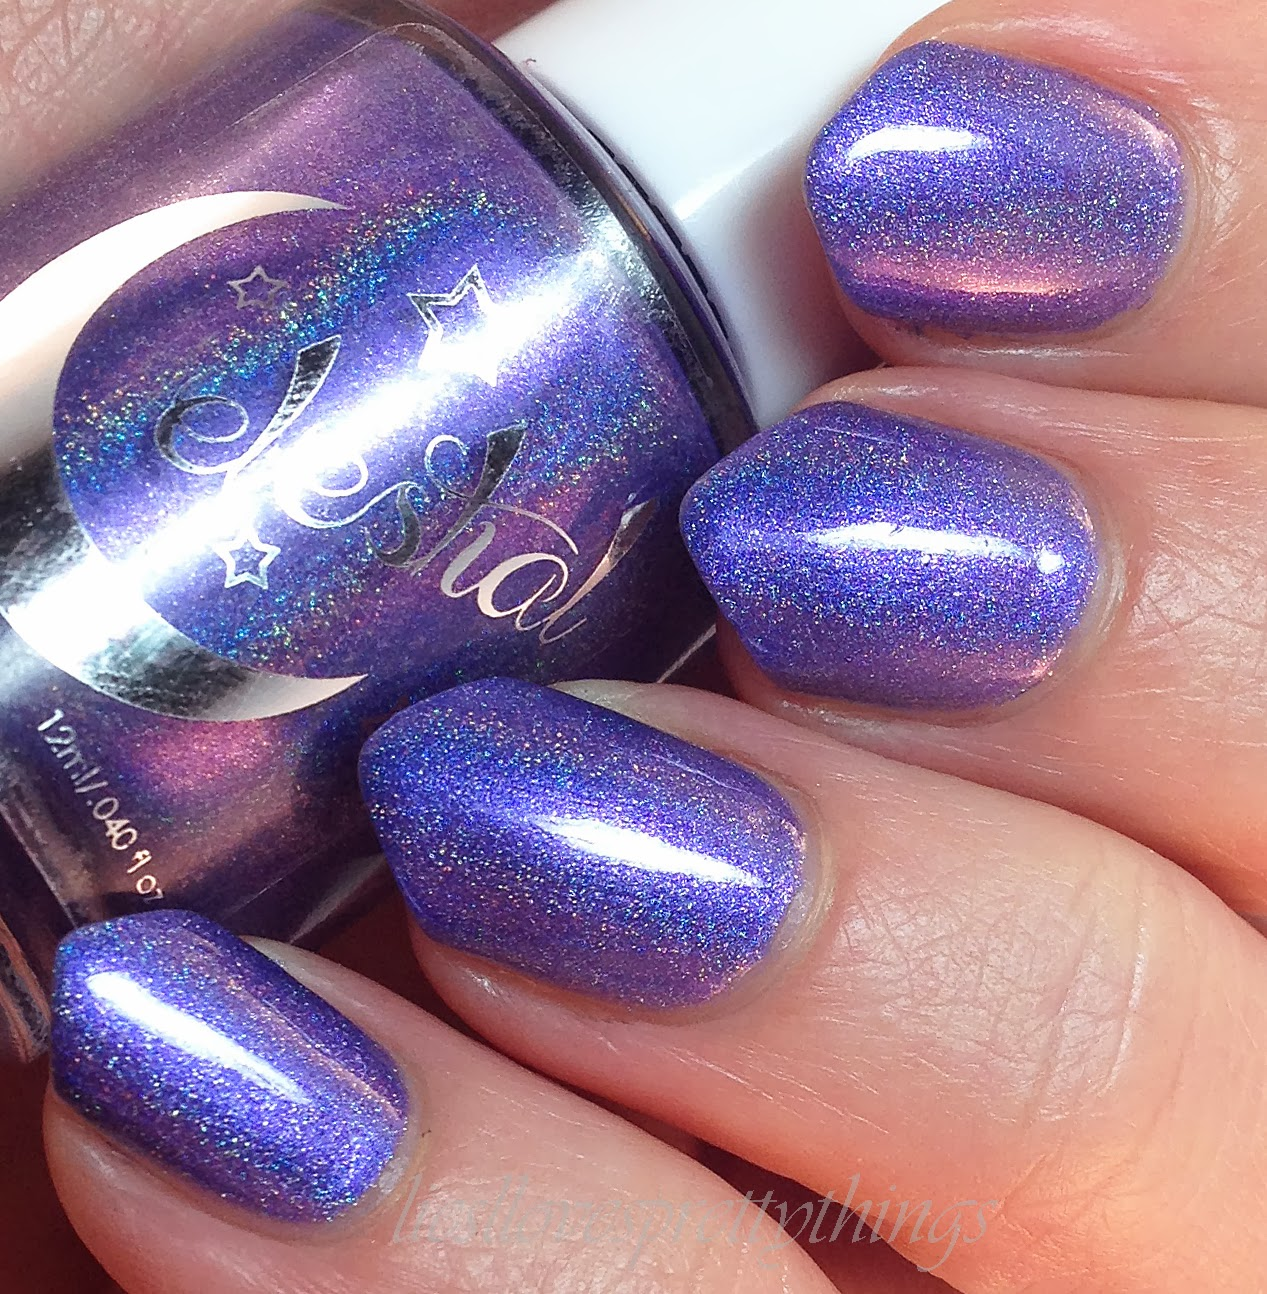 Celestial Cosmetics Noel's Nuts swatch and review